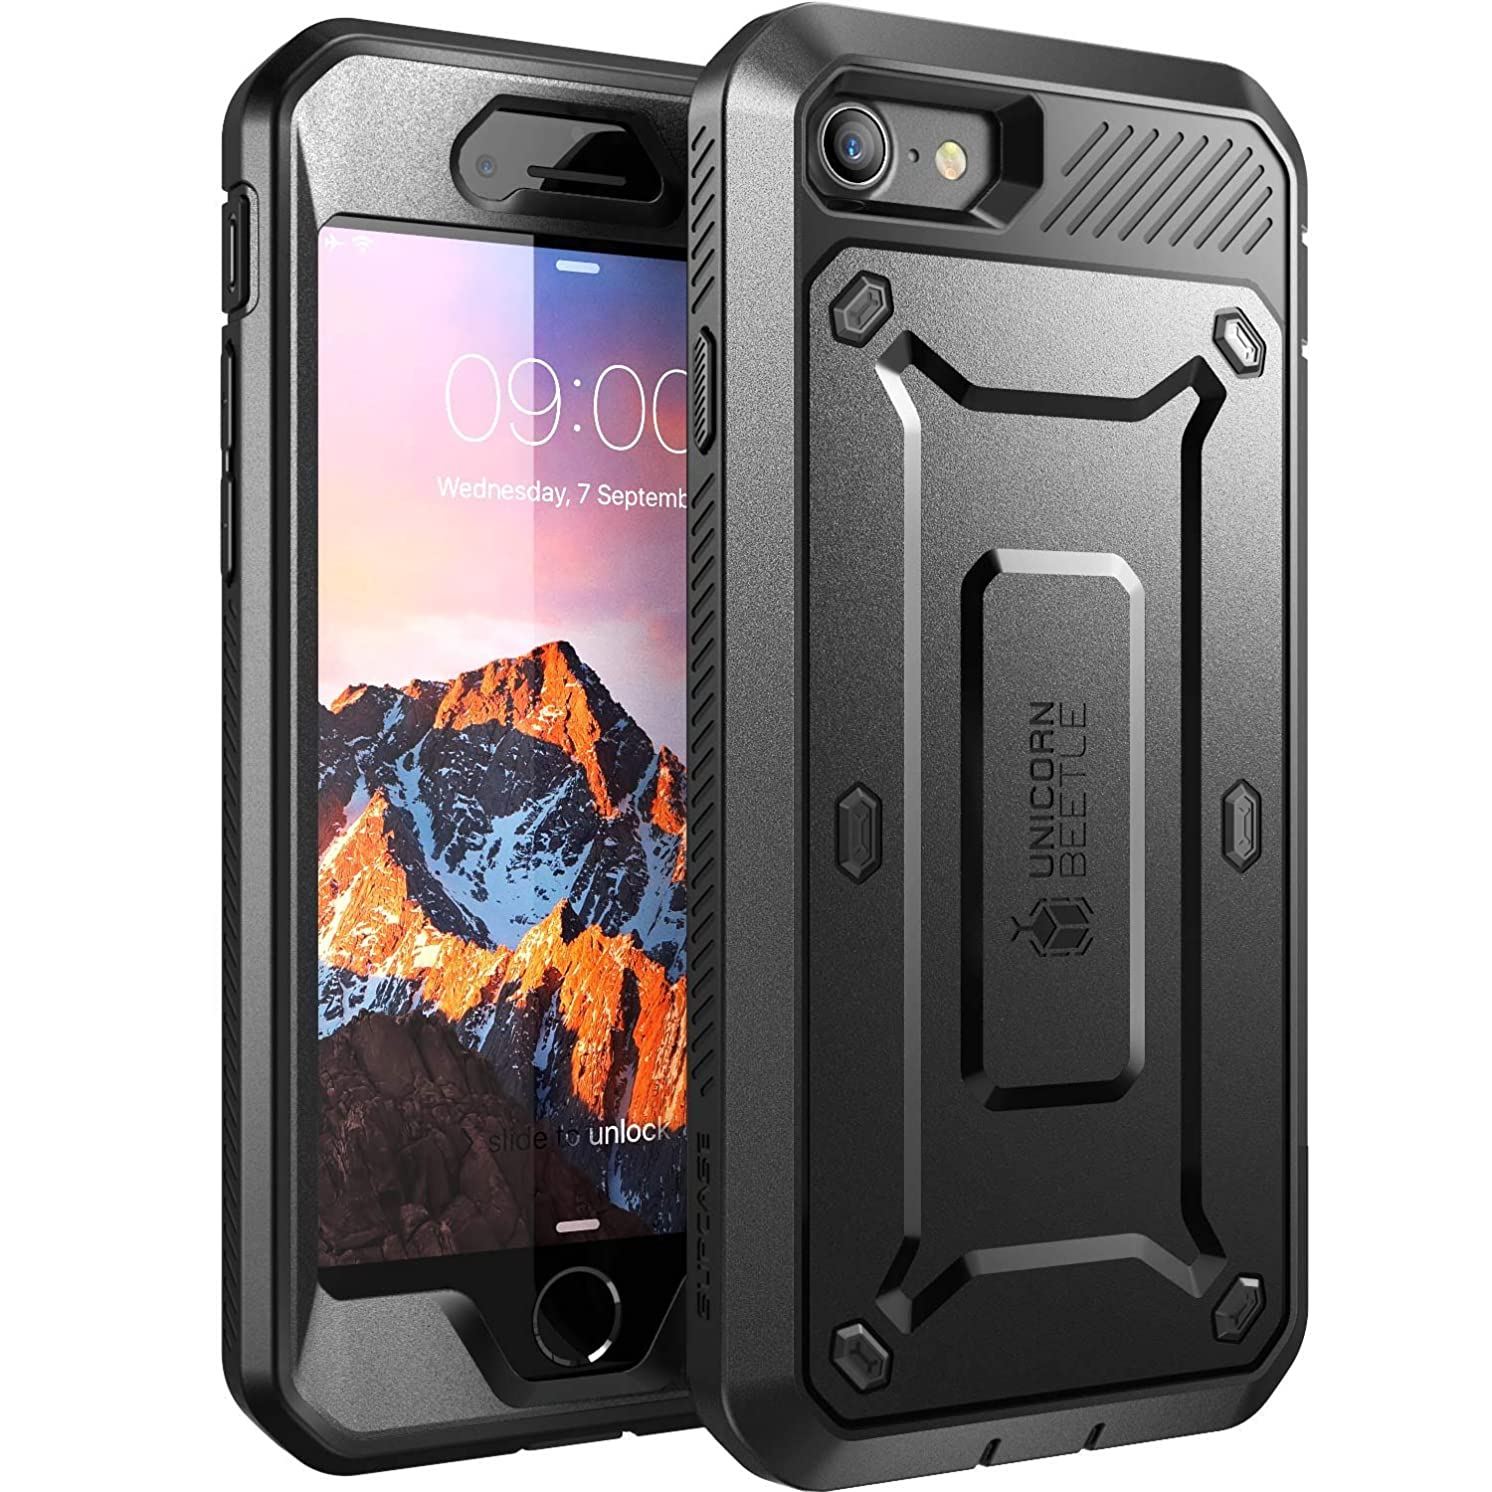 iPhone 7 Case, iPhone 8 Case, SUPCASE Unicorn Beetle PRO Series Full-Body Rugged Holster Case with Built-in Screen Protector for Apple iPhone 7 2016 / iPhone 8 2017 (Black) (Renewed)